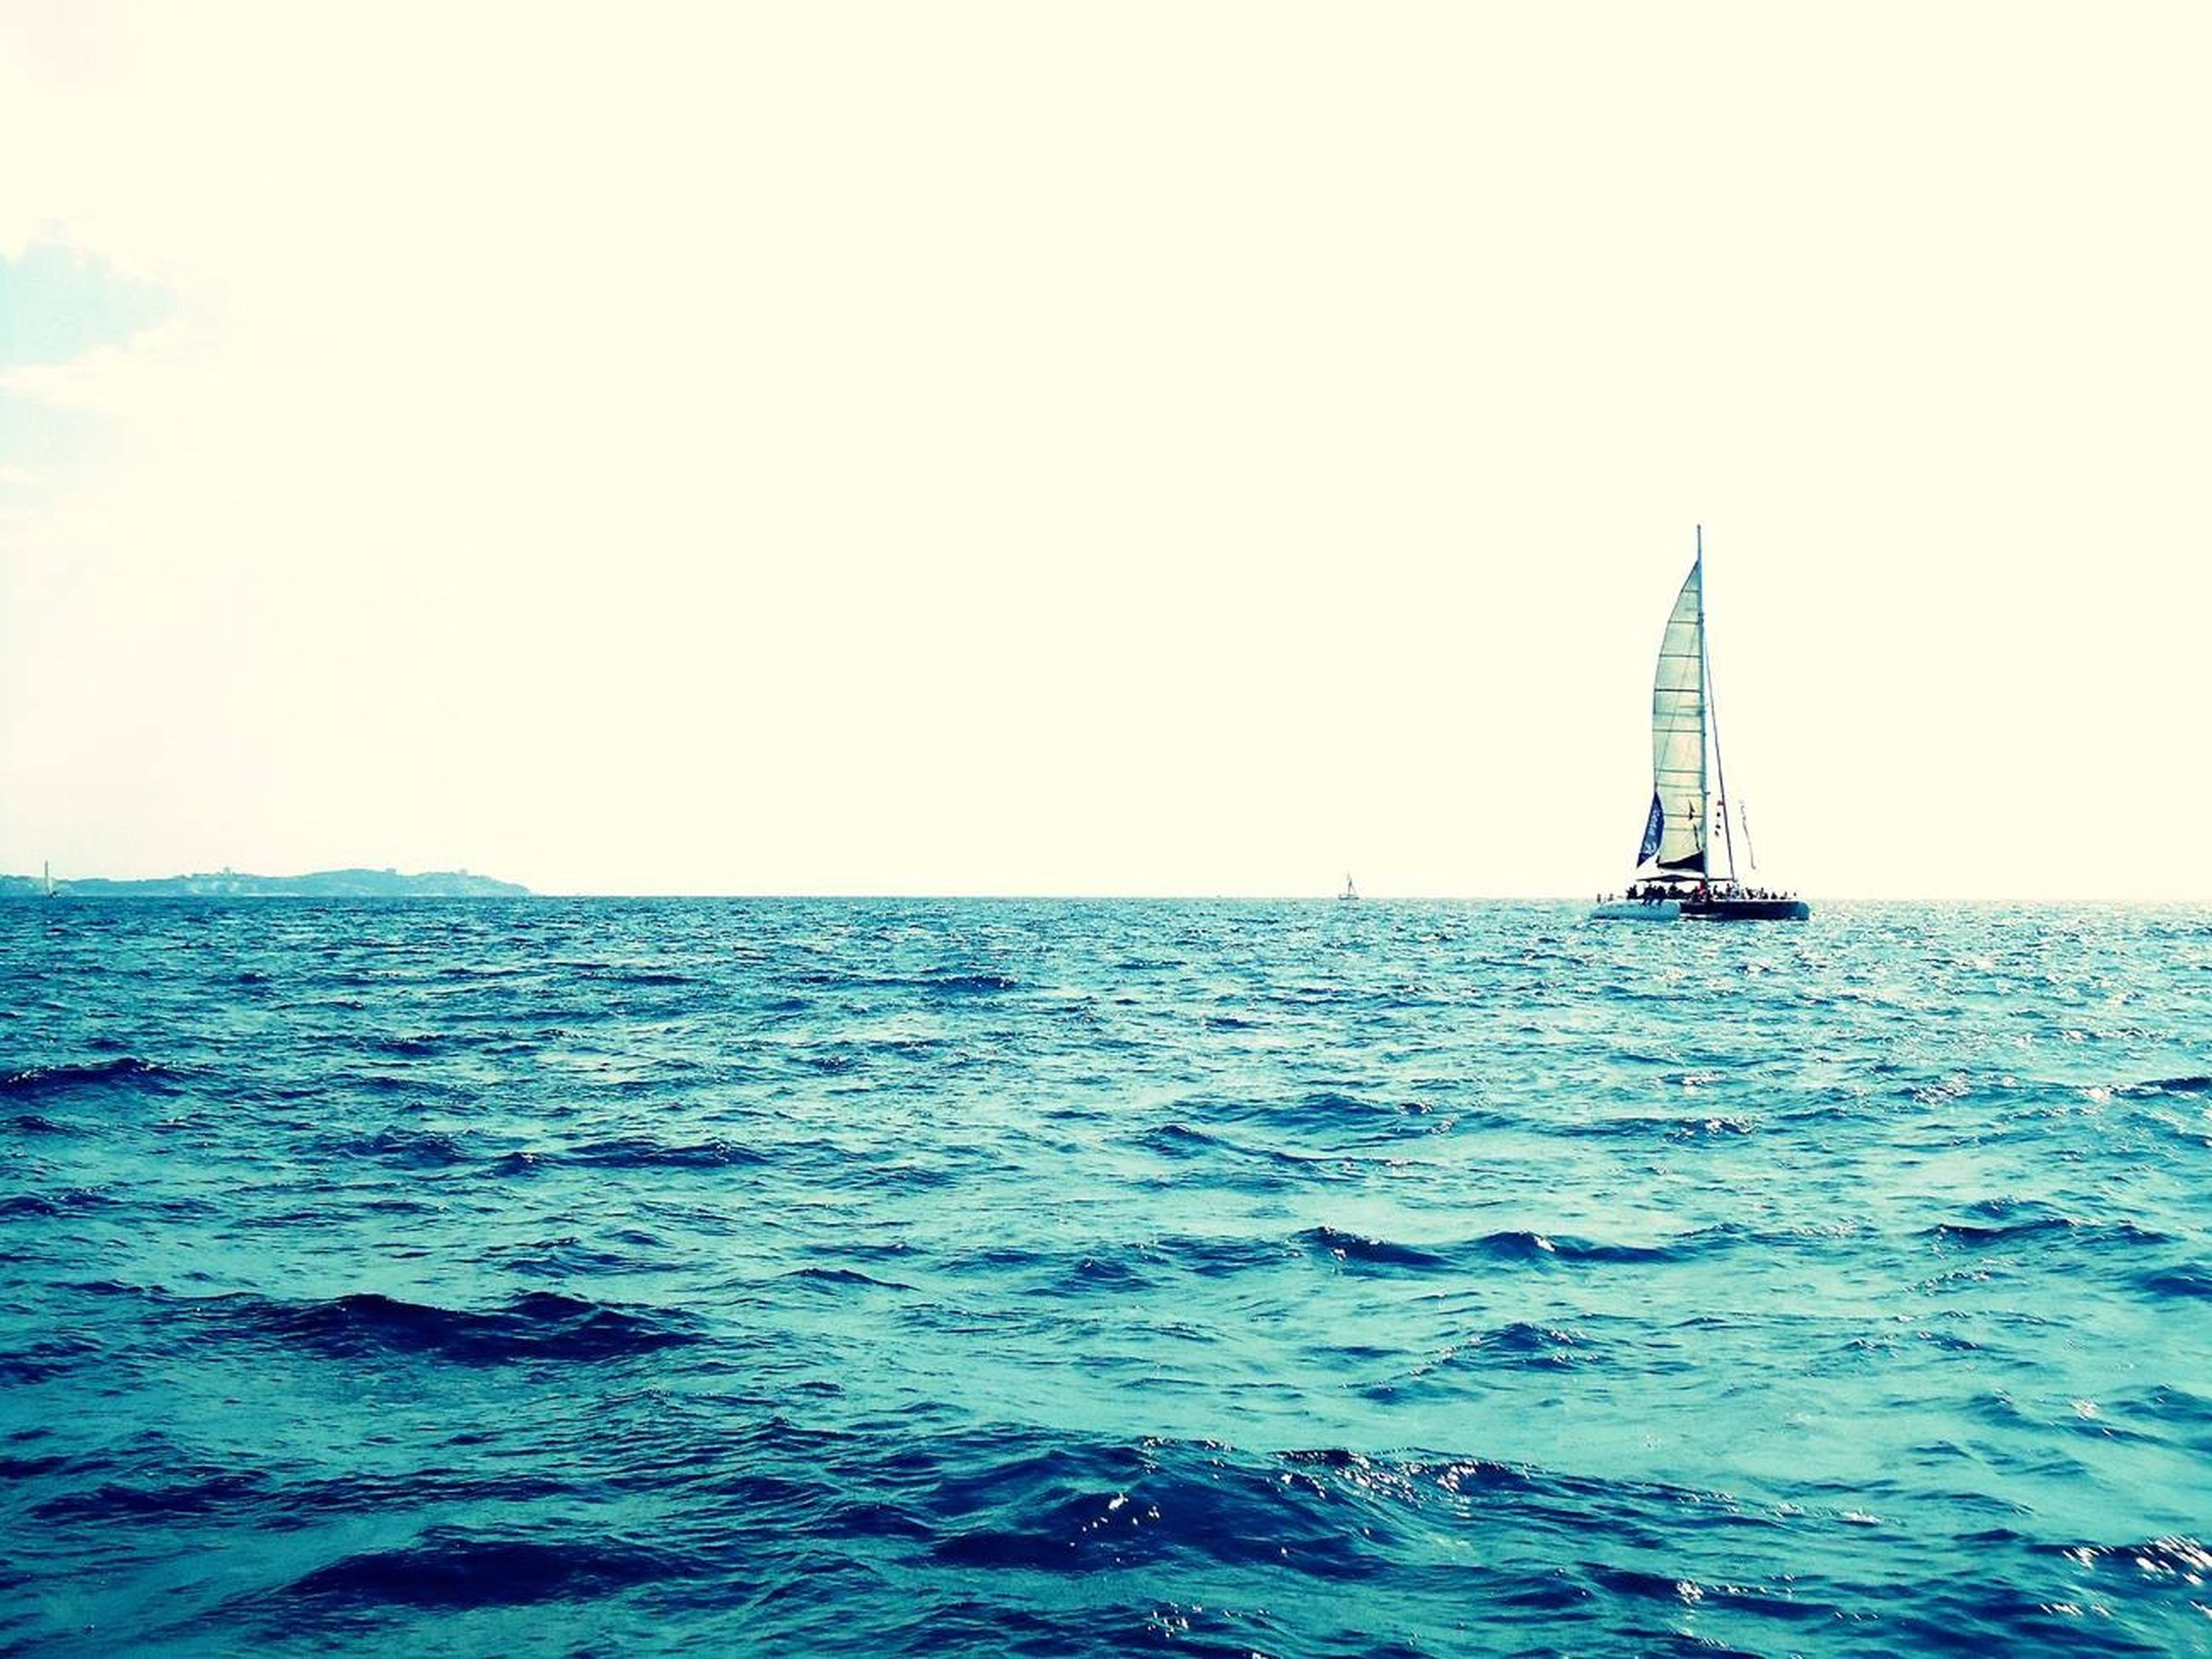 sea, water, nautical vessel, waterfront, transportation, horizon over water, mode of transport, boat, sailing, rippled, sailboat, clear sky, blue, scenics, beauty in nature, tranquil scene, copy space, tranquility, nature, seascape